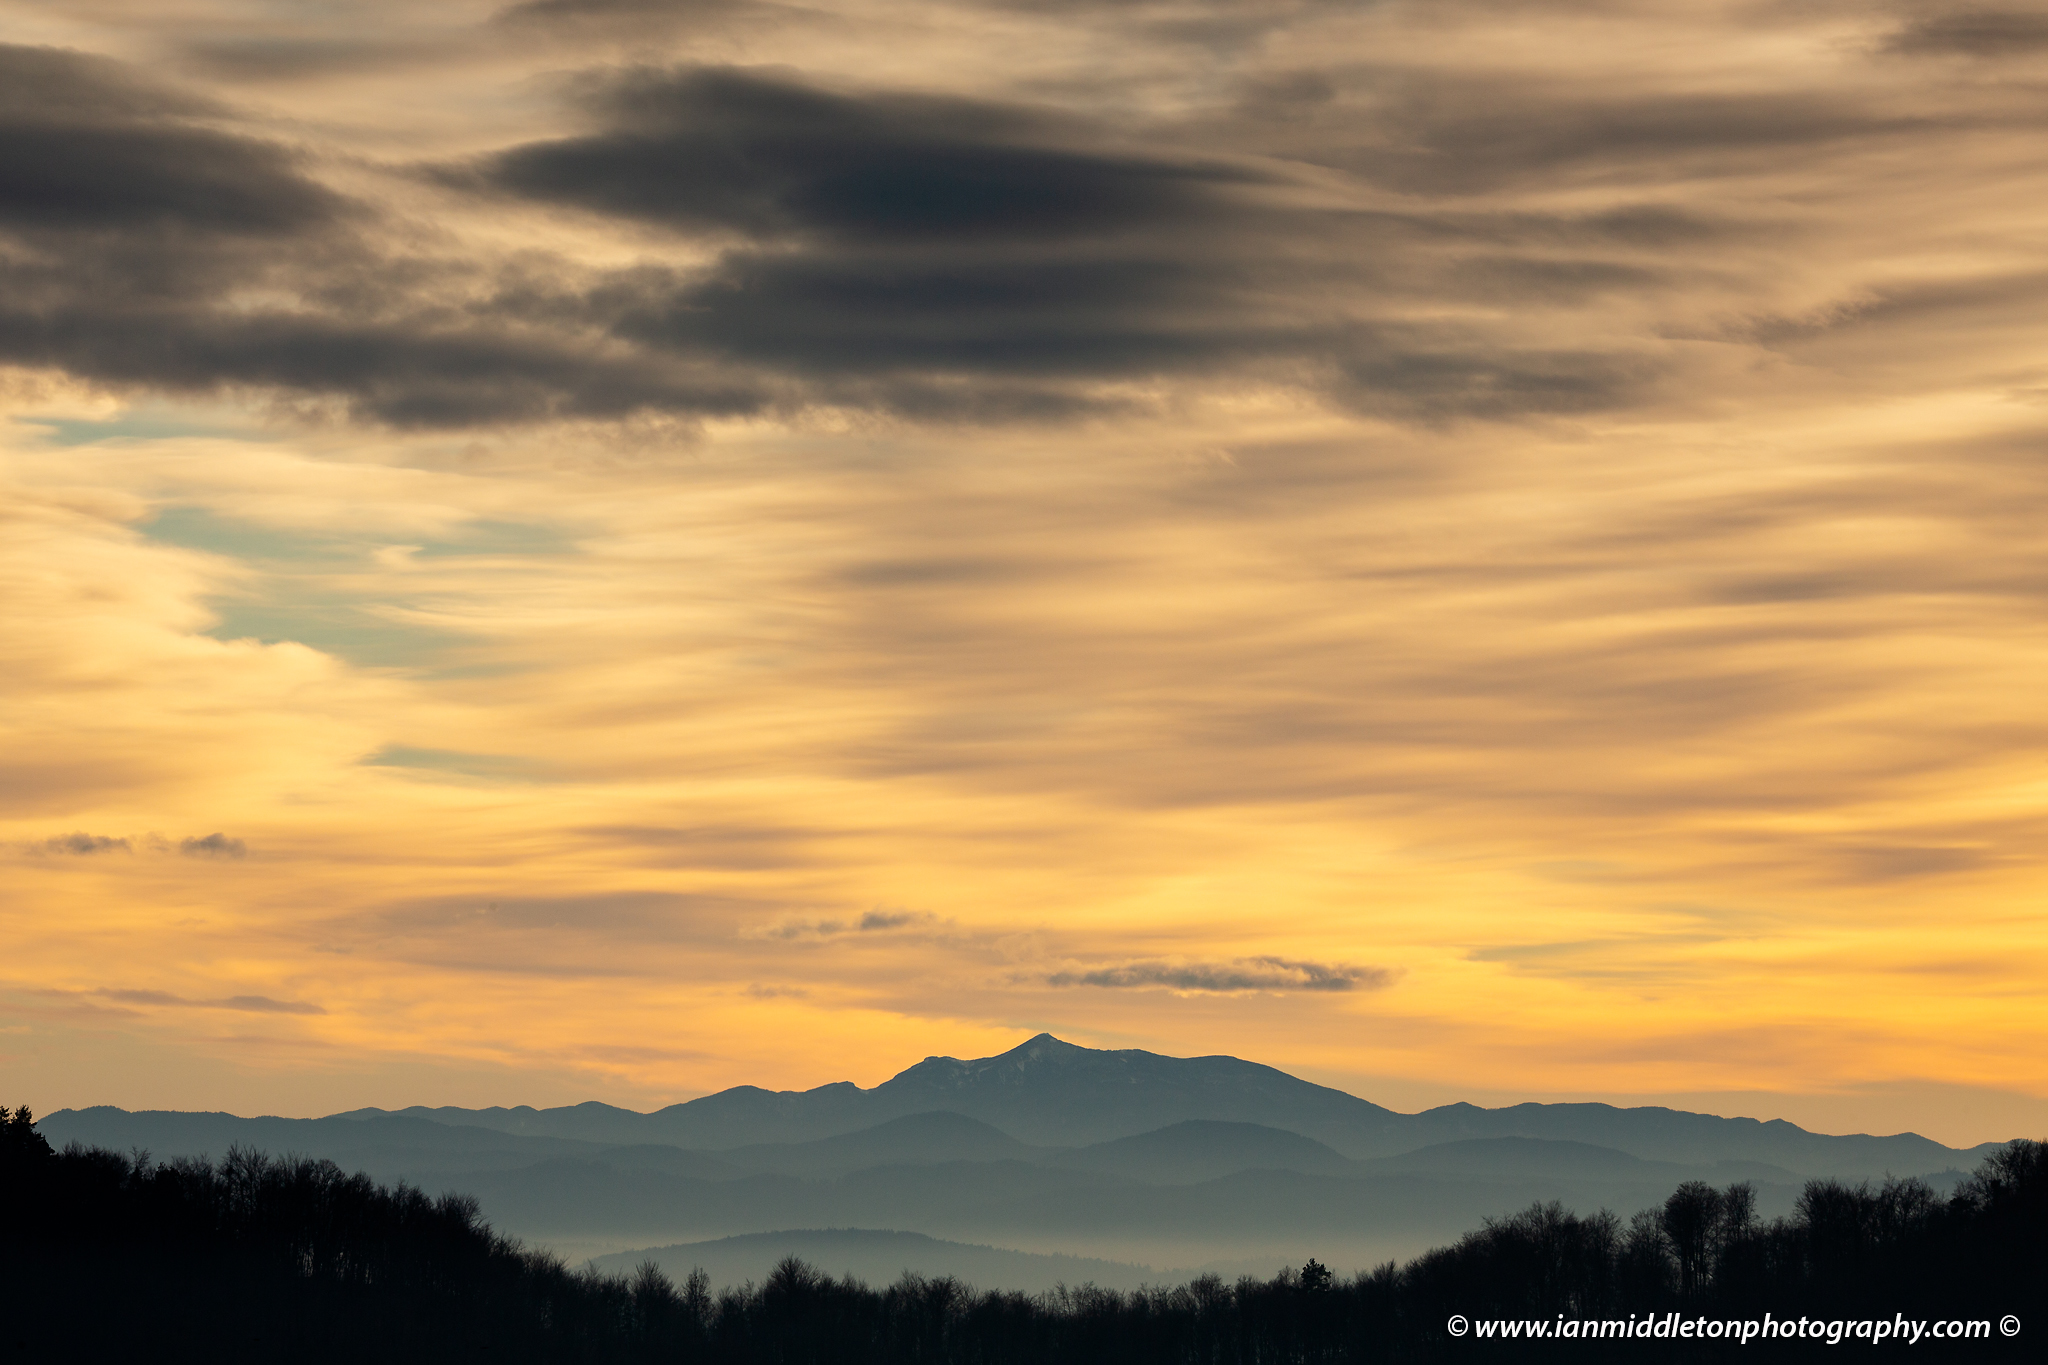 View across to the Sneznik mountain at sundown, seen from a hill in prezganje to the east of Ljubljana, Slovenia